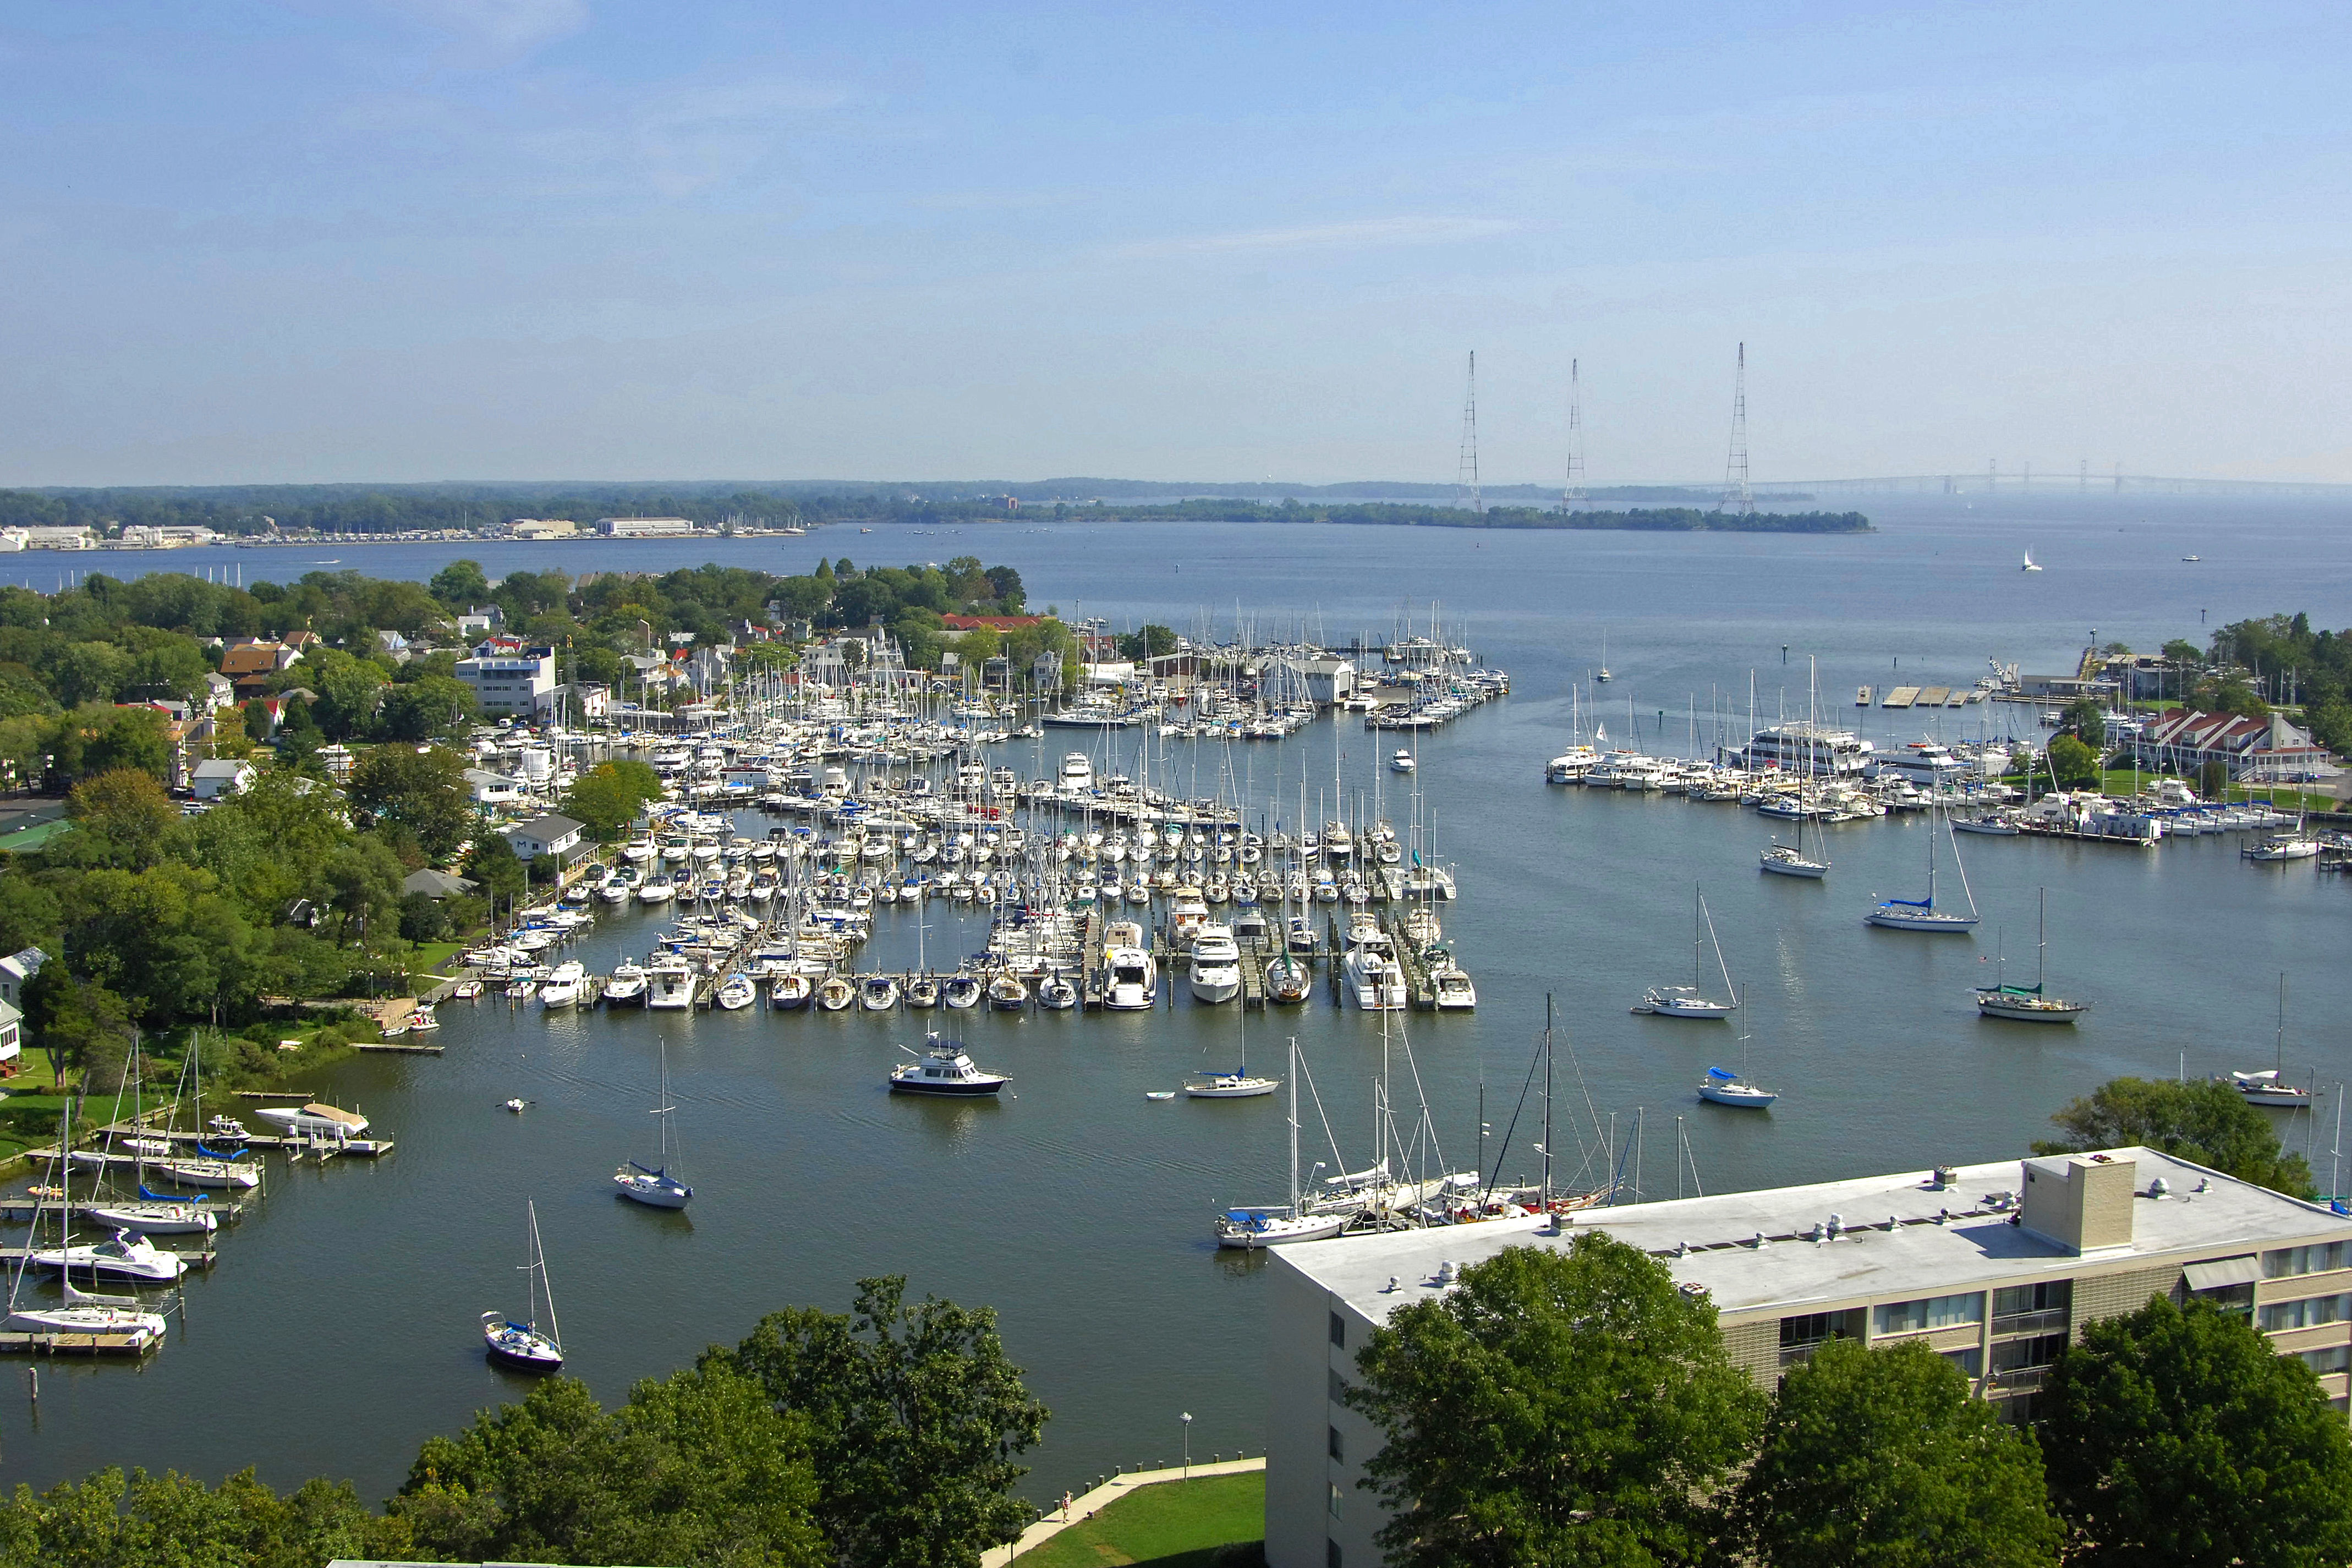 Mears Marina Annapolis in Annapolis, MD, United States